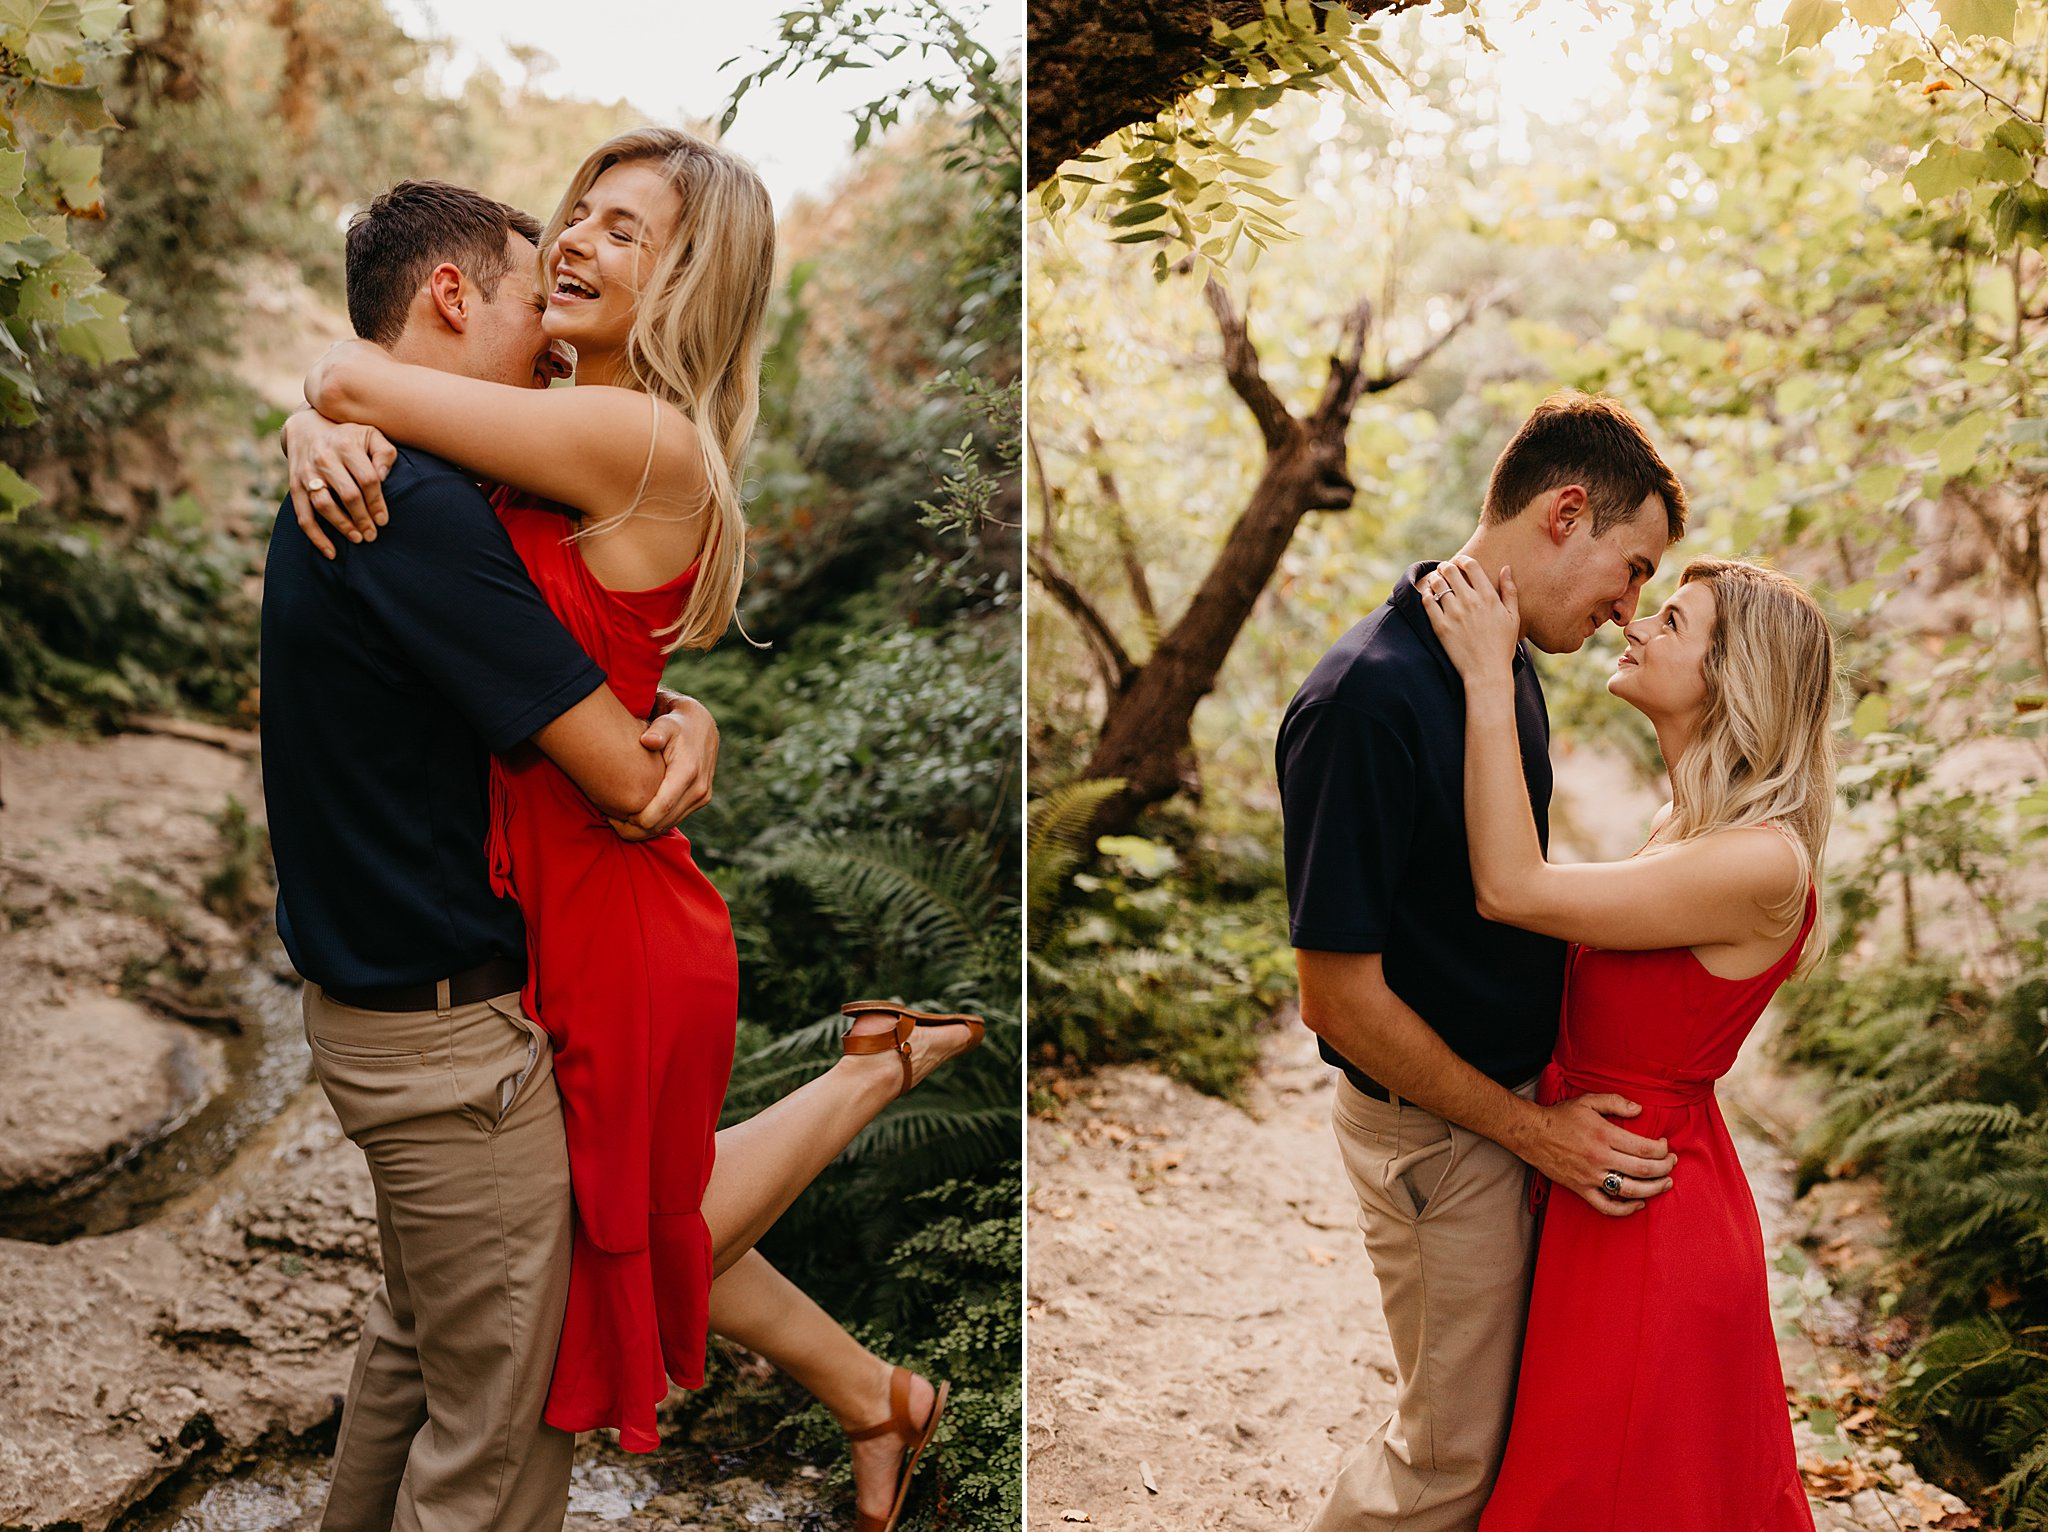 Wilderlove Co_Wedding Photographer_Dripping Springs Photography_Adventure Engagemenet_Rock Climbing Engagement_Hill Country Photographer_North Texas Photographer_0016.jpg